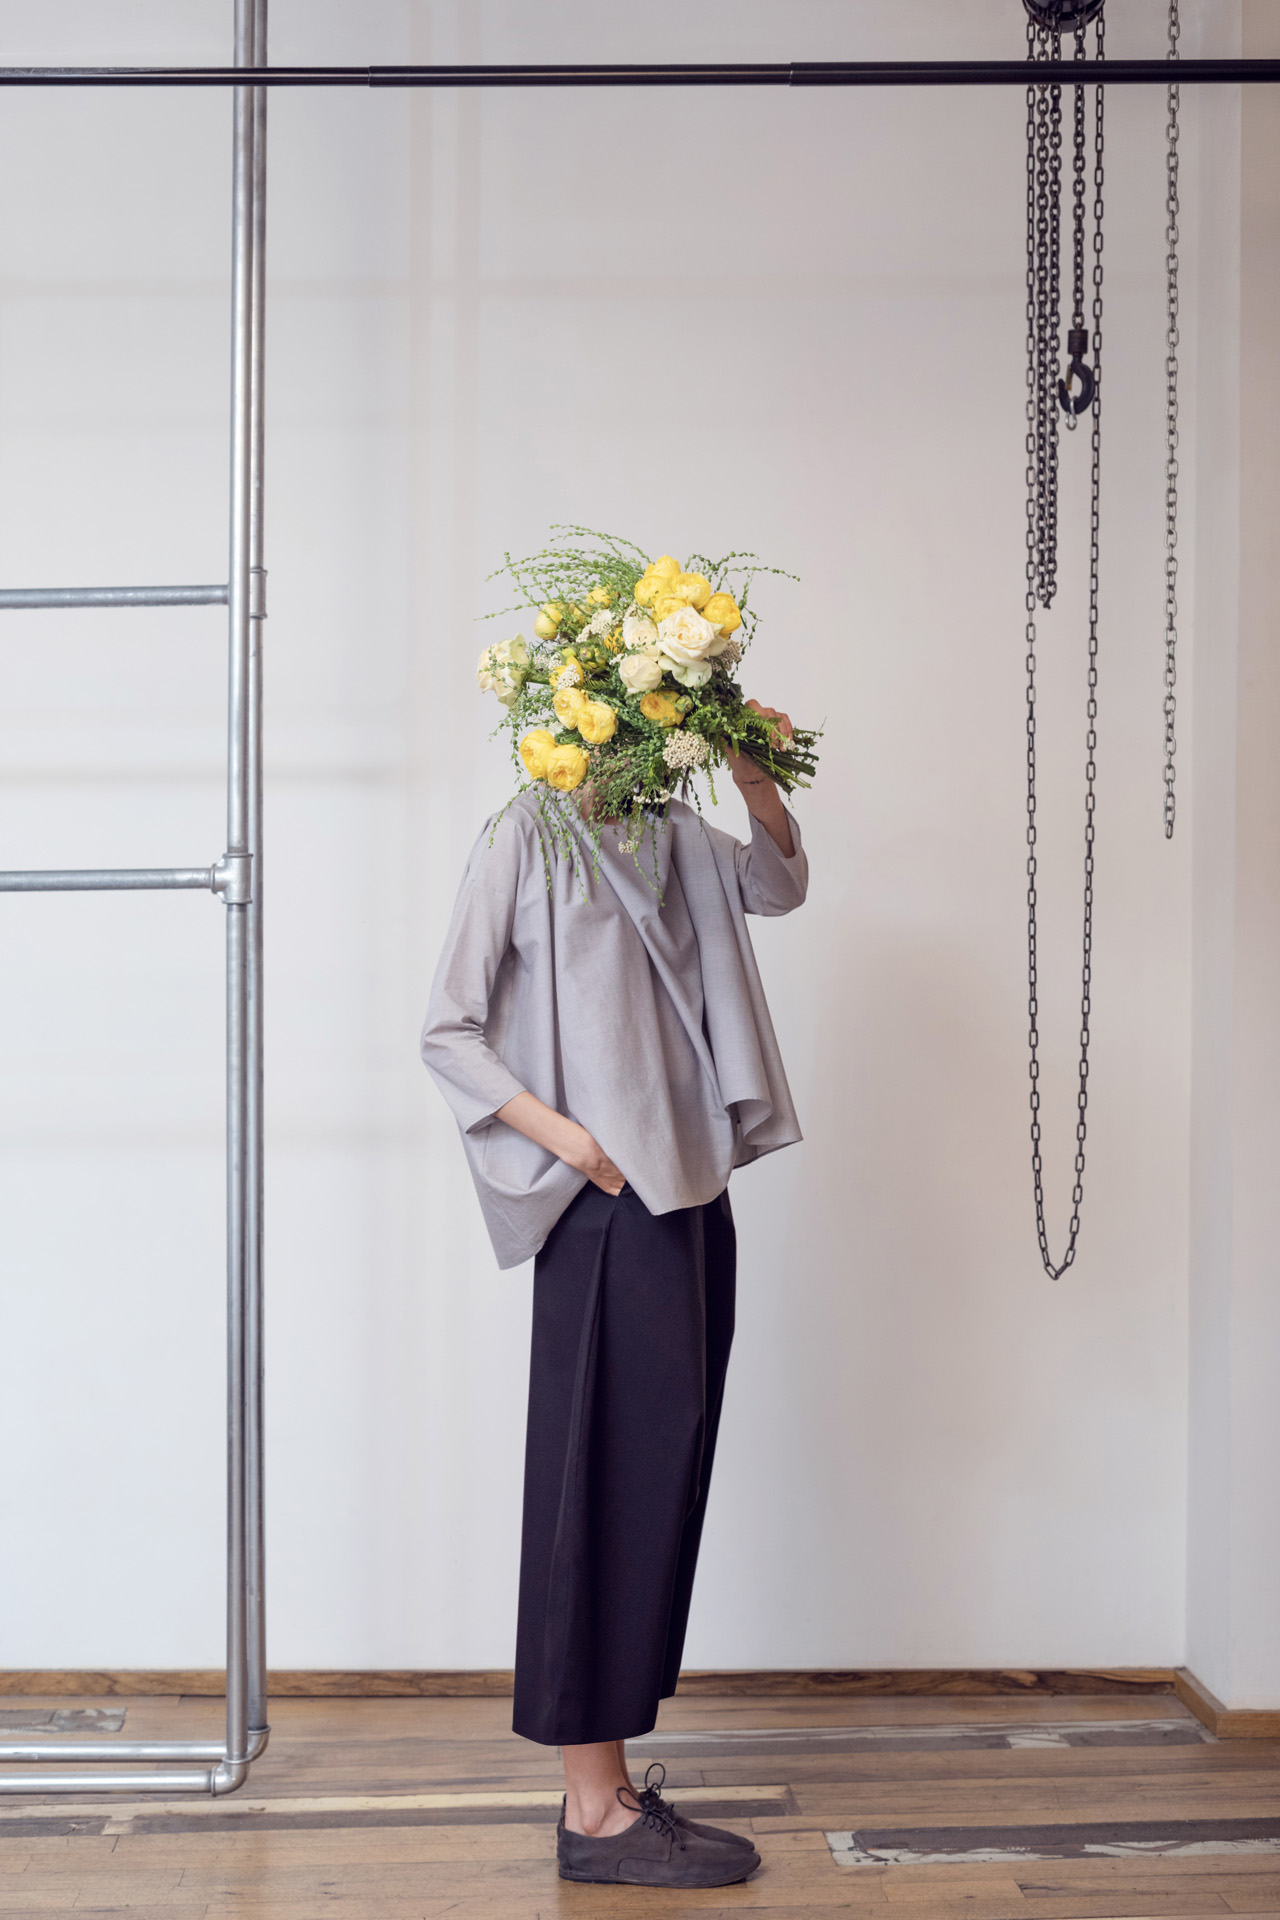 Lara Khoury | LK Stripped | Capsule 1-2019 | 2- Light Gray Cotton Poplin Cowl Neck Top and Black Cotton Poplin Sarwal Pants 1.jpg